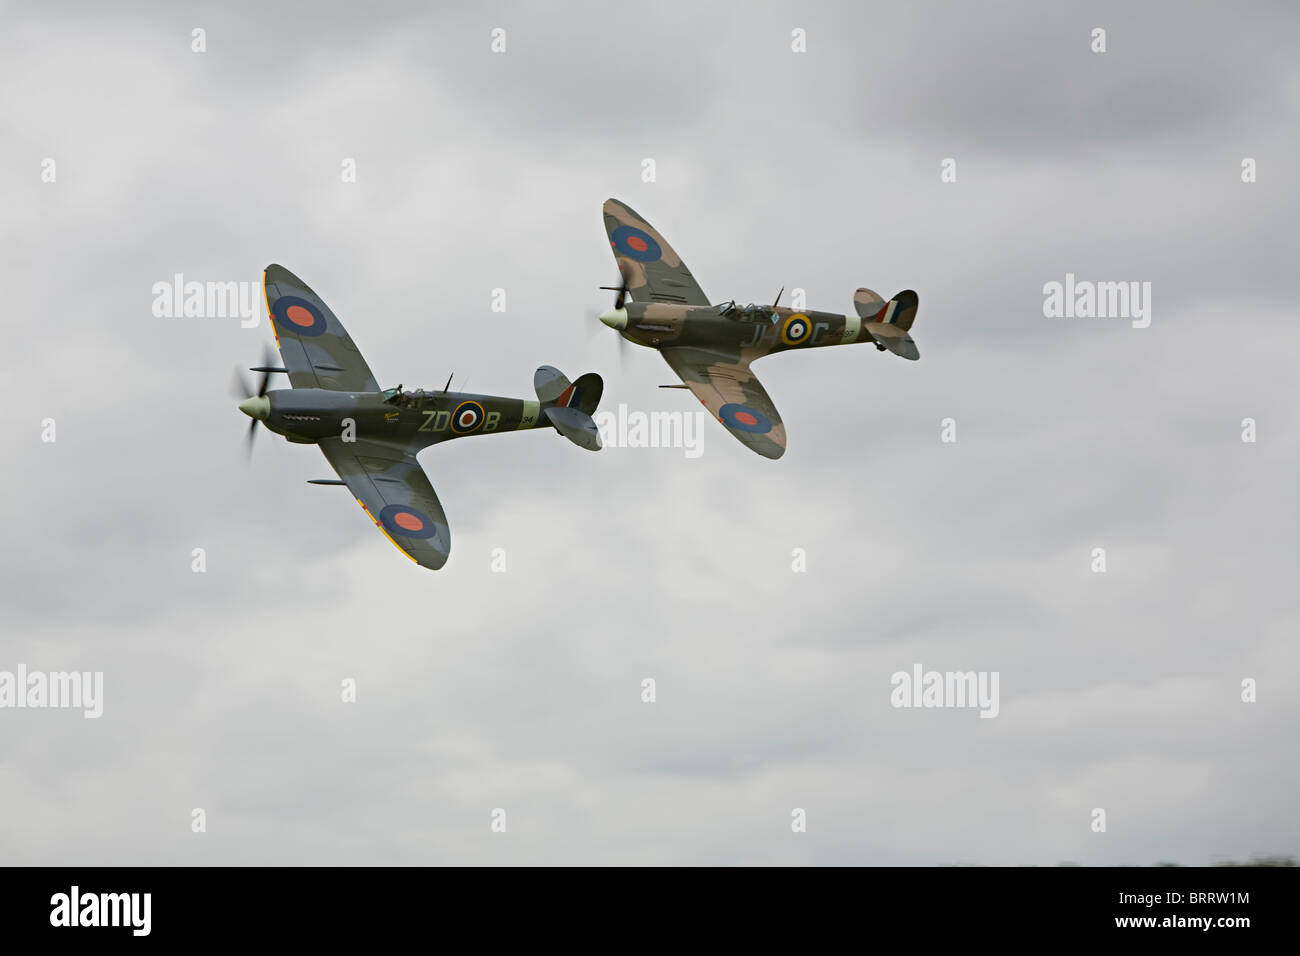 Spitfire and Hurricane flying at Goodwood Revival, Chichester, West Sussex - Stock Image